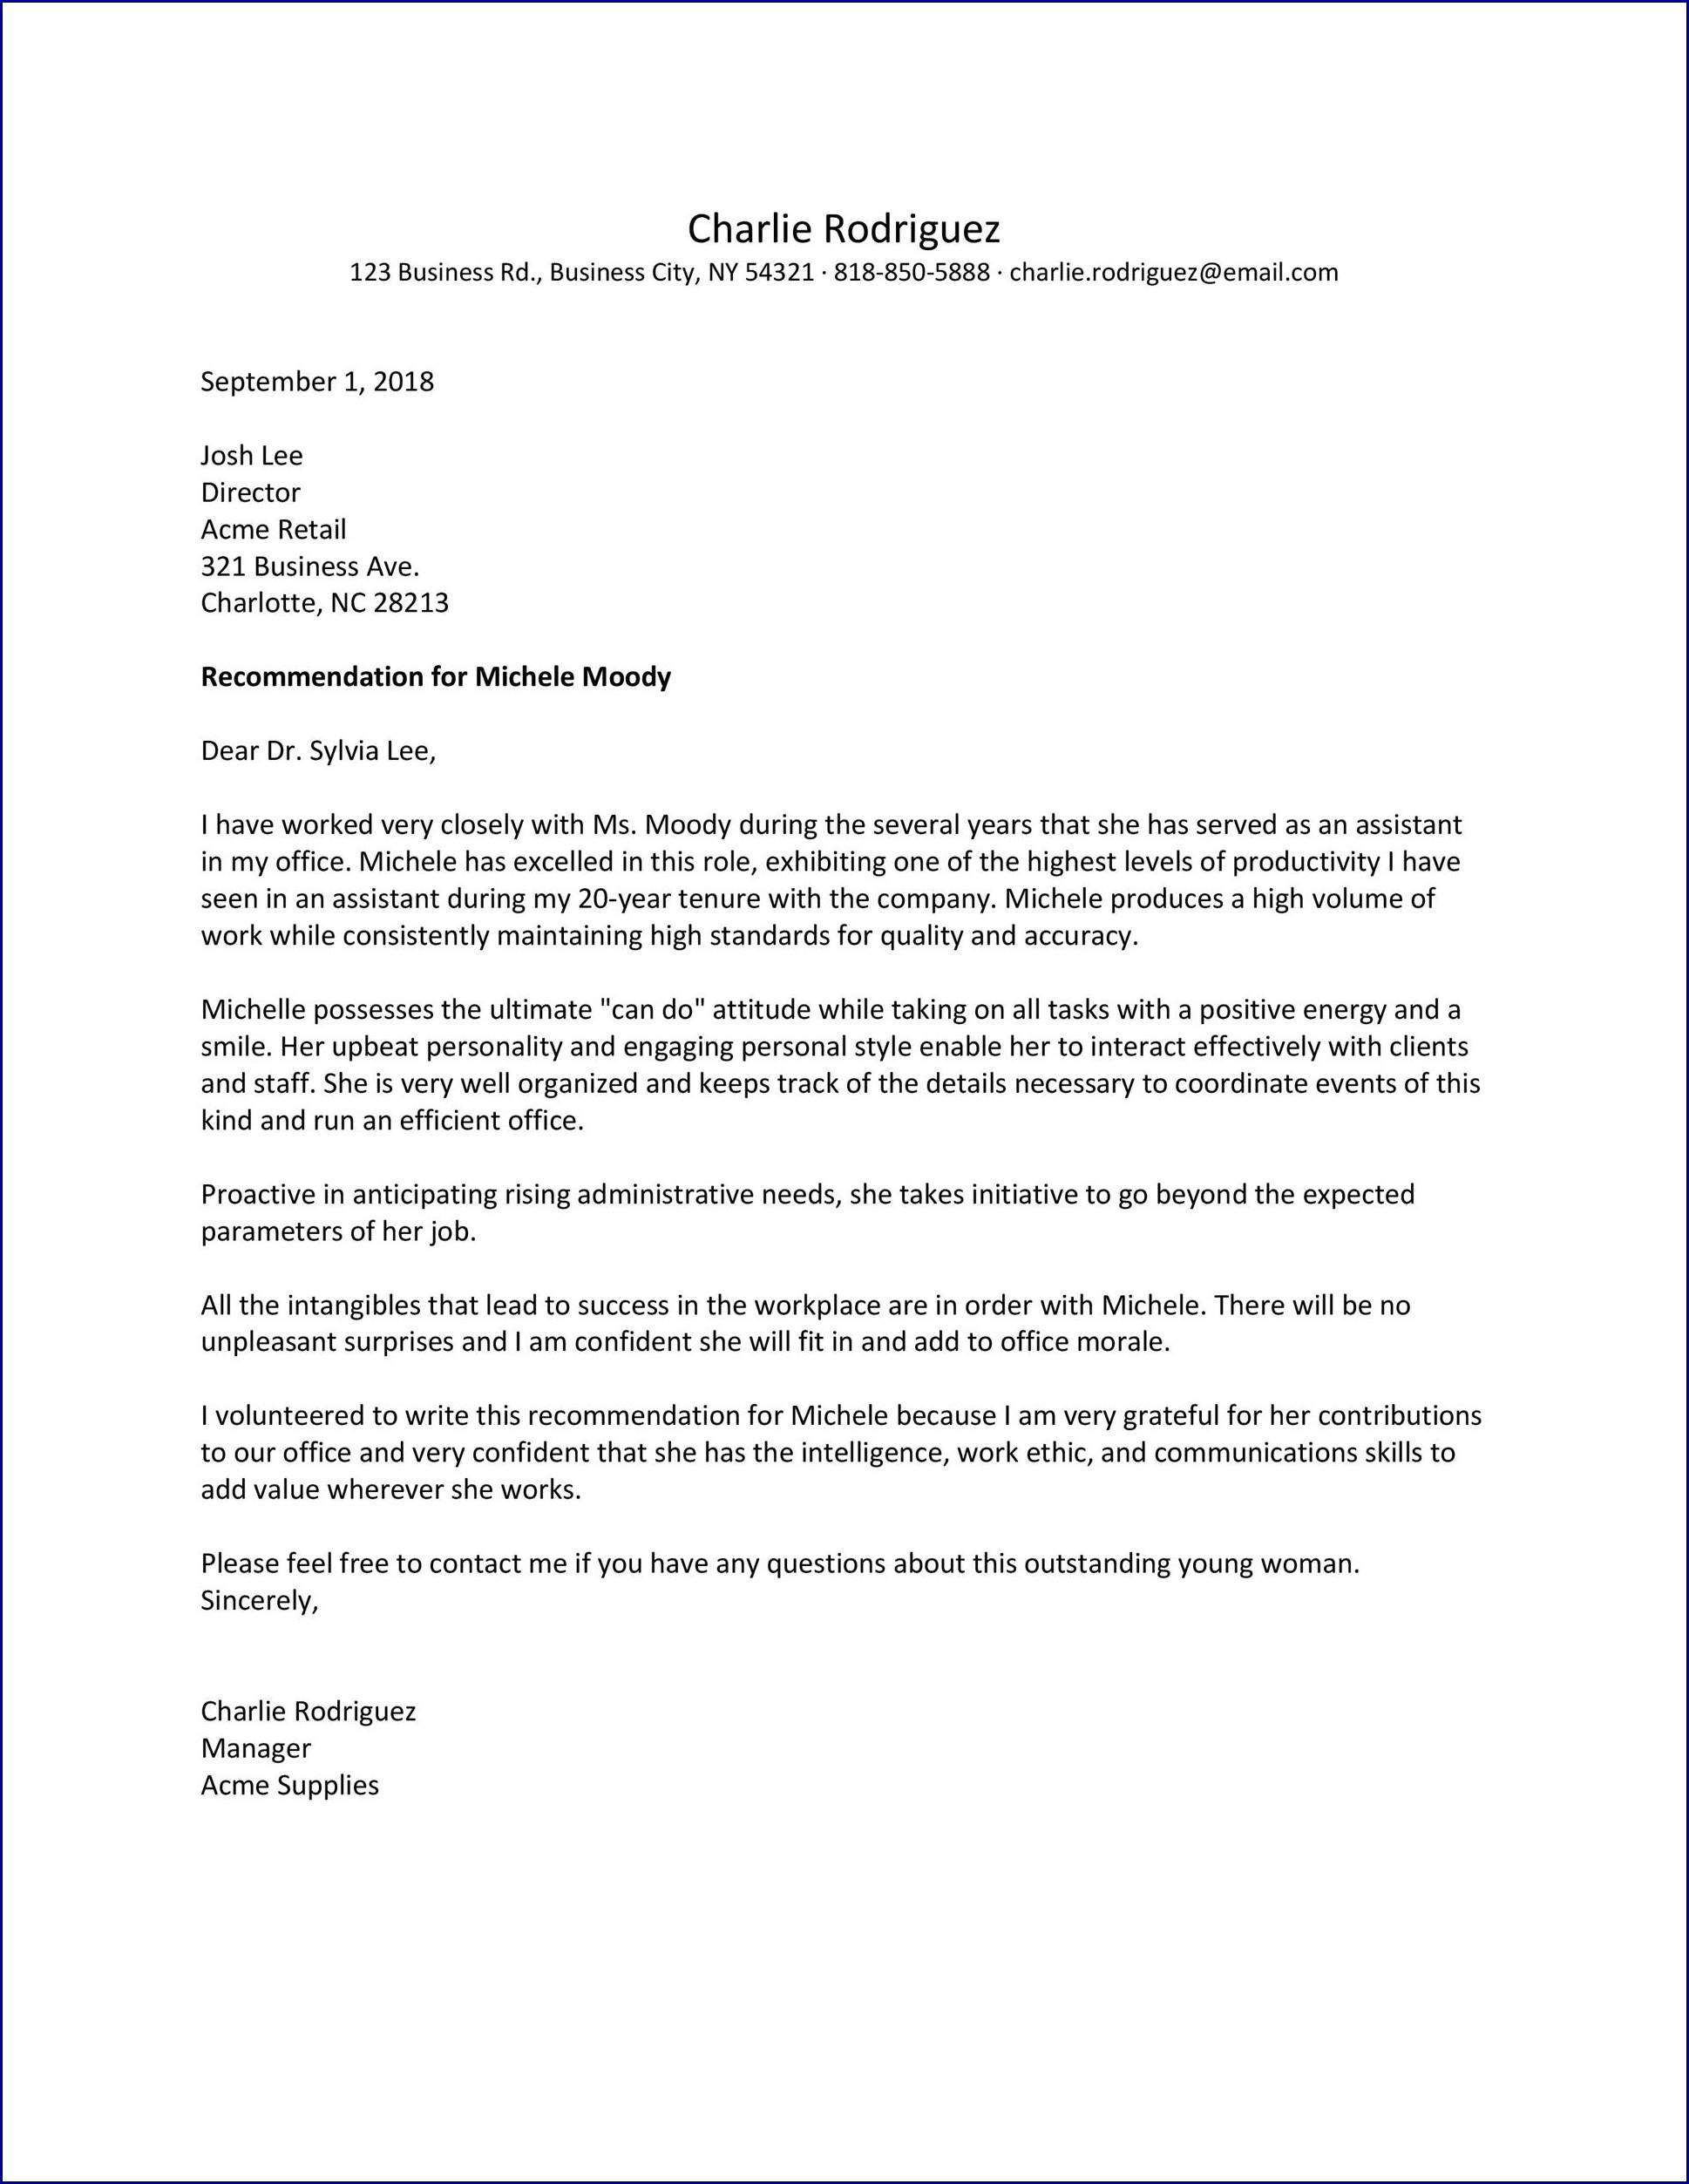 Letter of Recommendation Template for a Job Sample